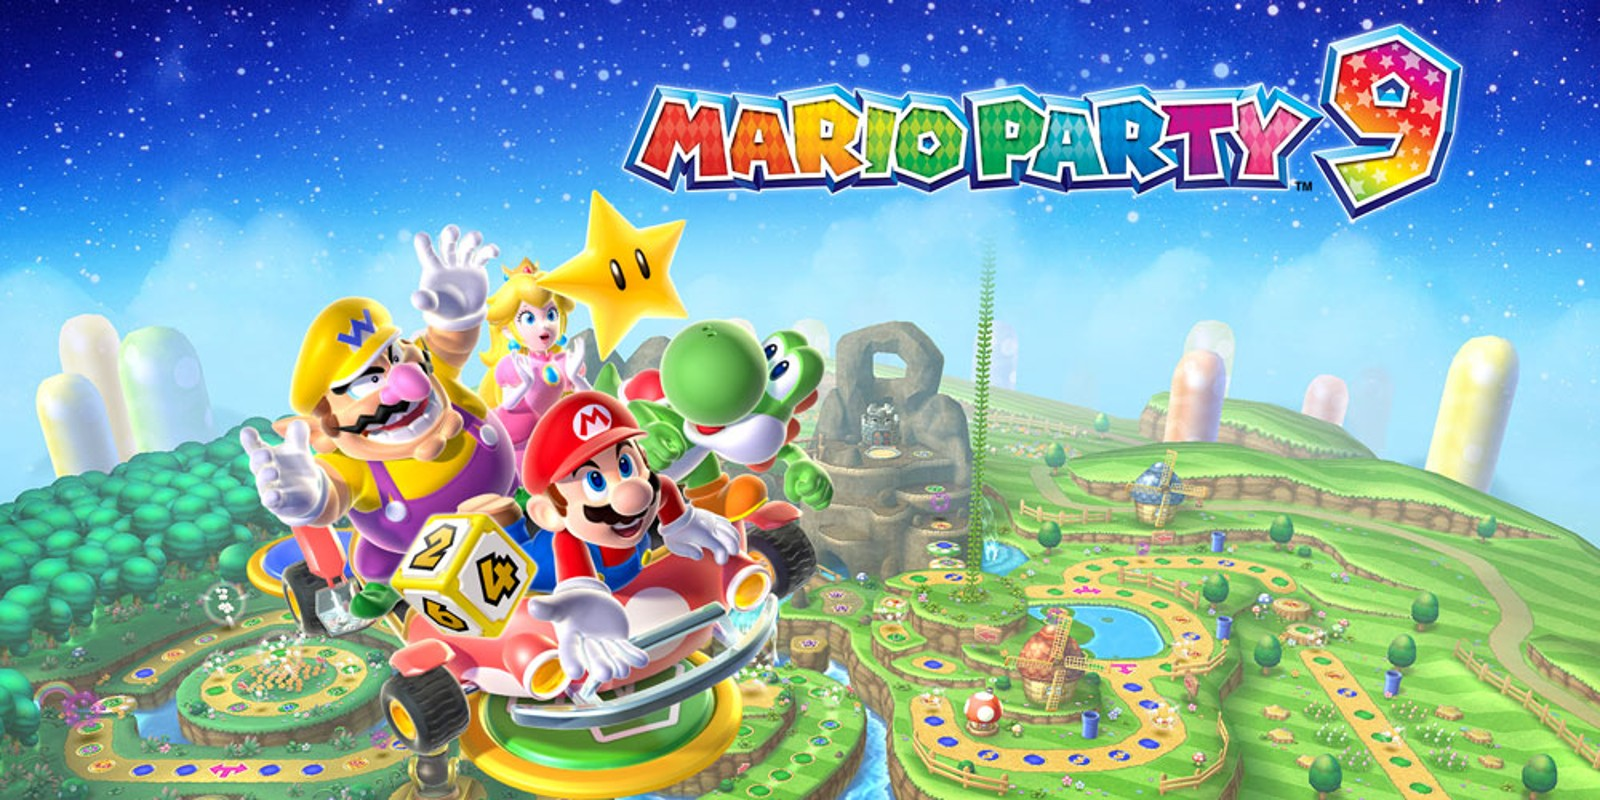 3d Touch Wallpaper Maker Mario Party 9 Wii Jogos Nintendo